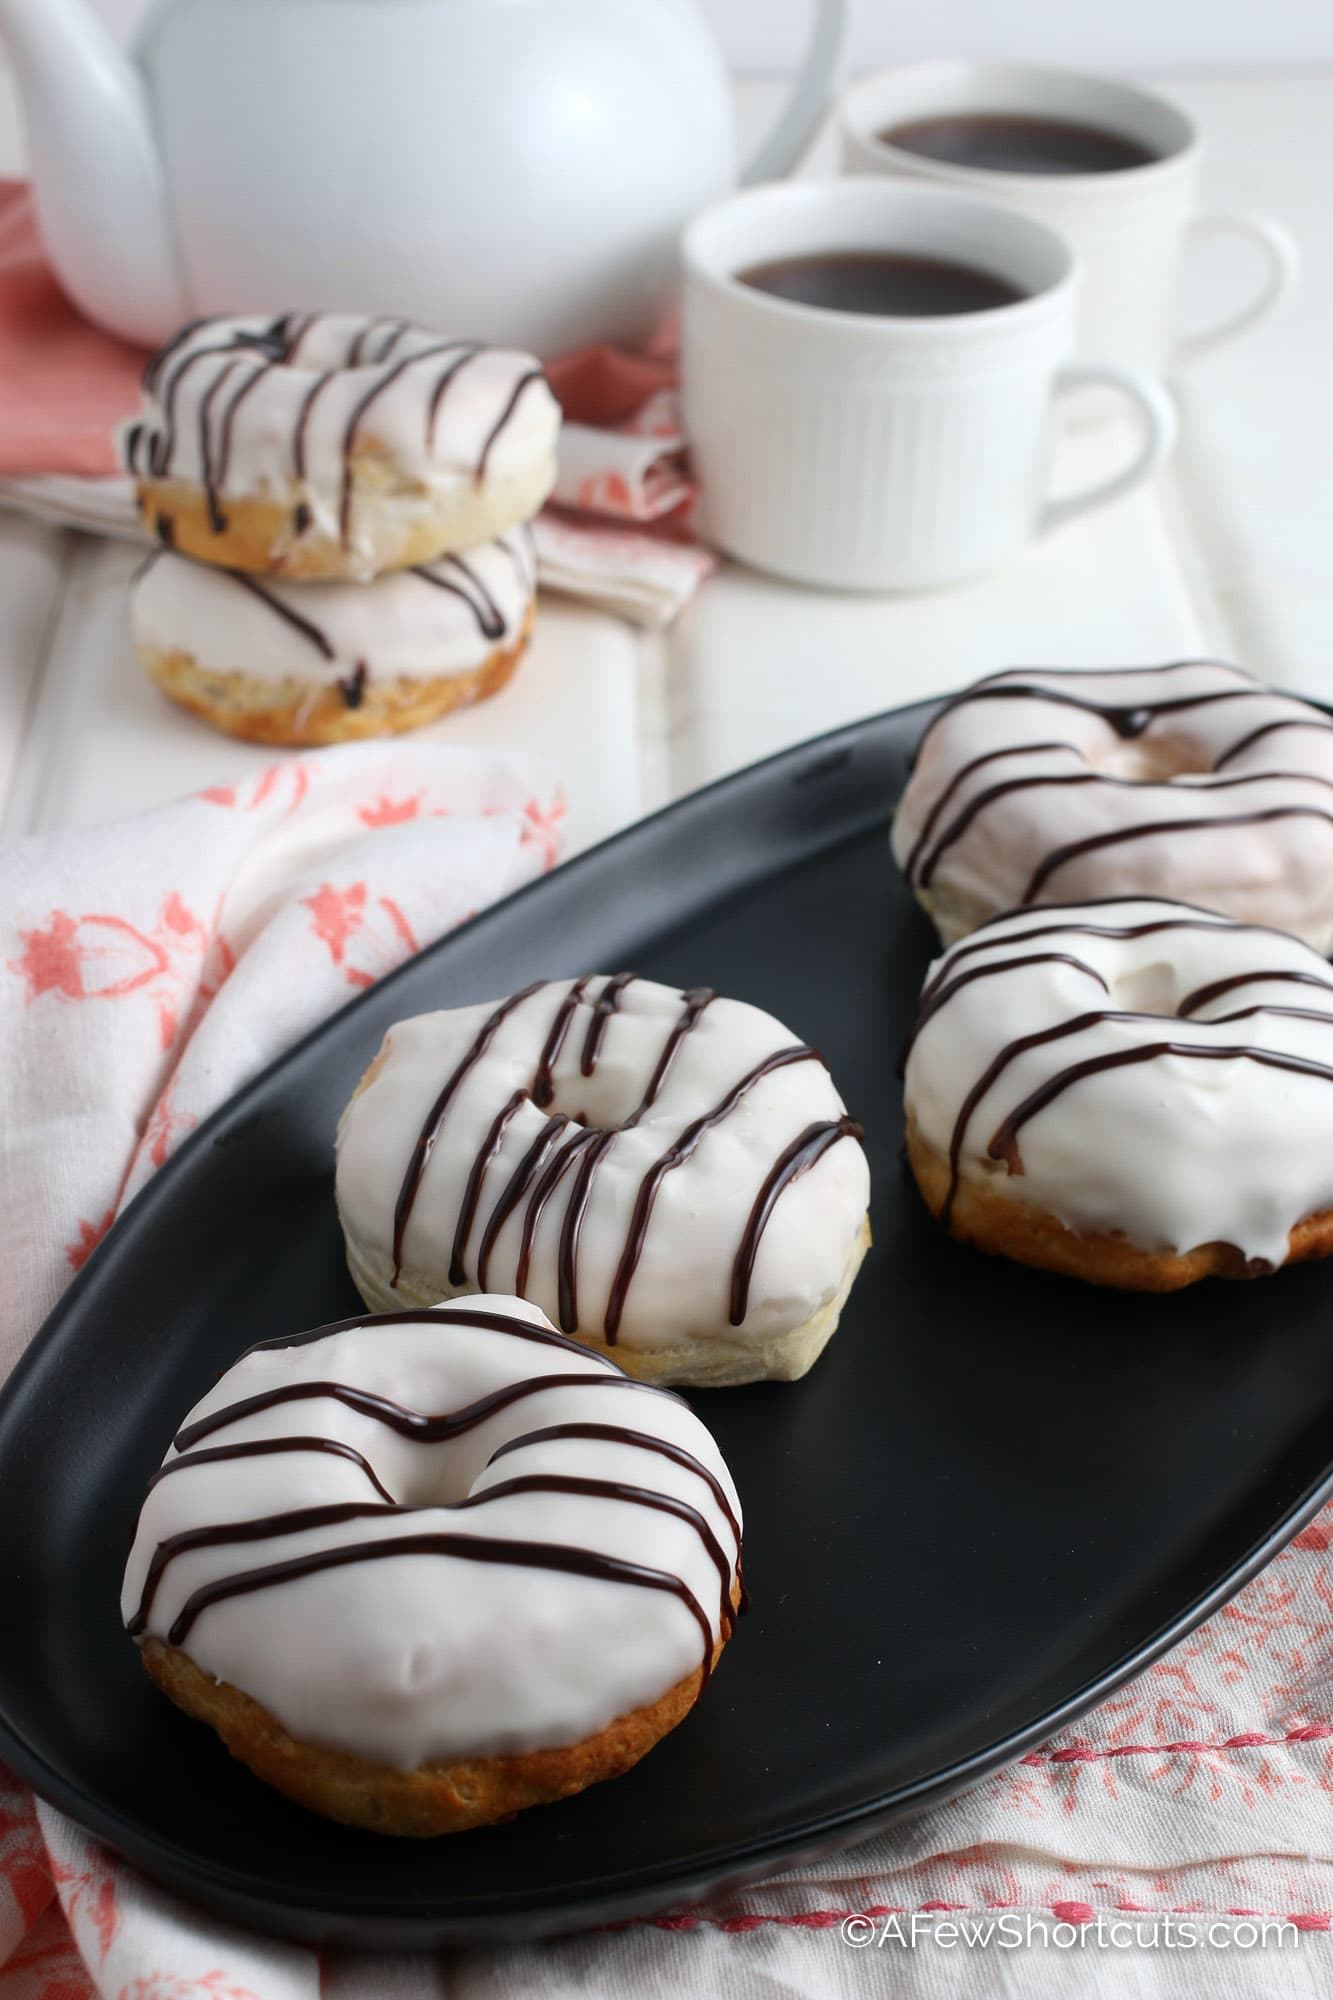 Air Fryer Donuts with Frosting and chocolate drizzle